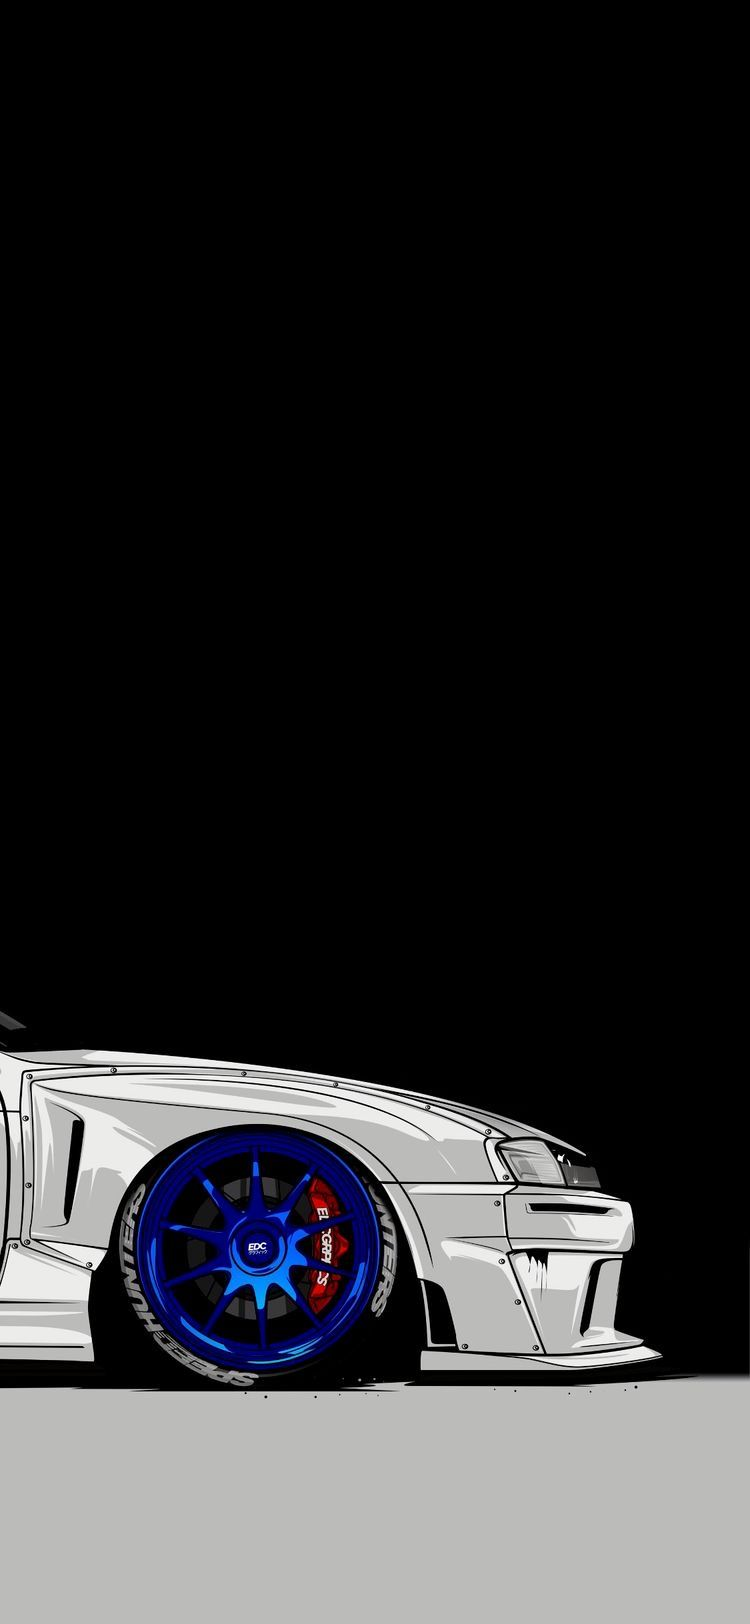 Pin By Privaterayan On Cars Hd Jdm Wallpaper Cool Car Drawings Tuner Cars